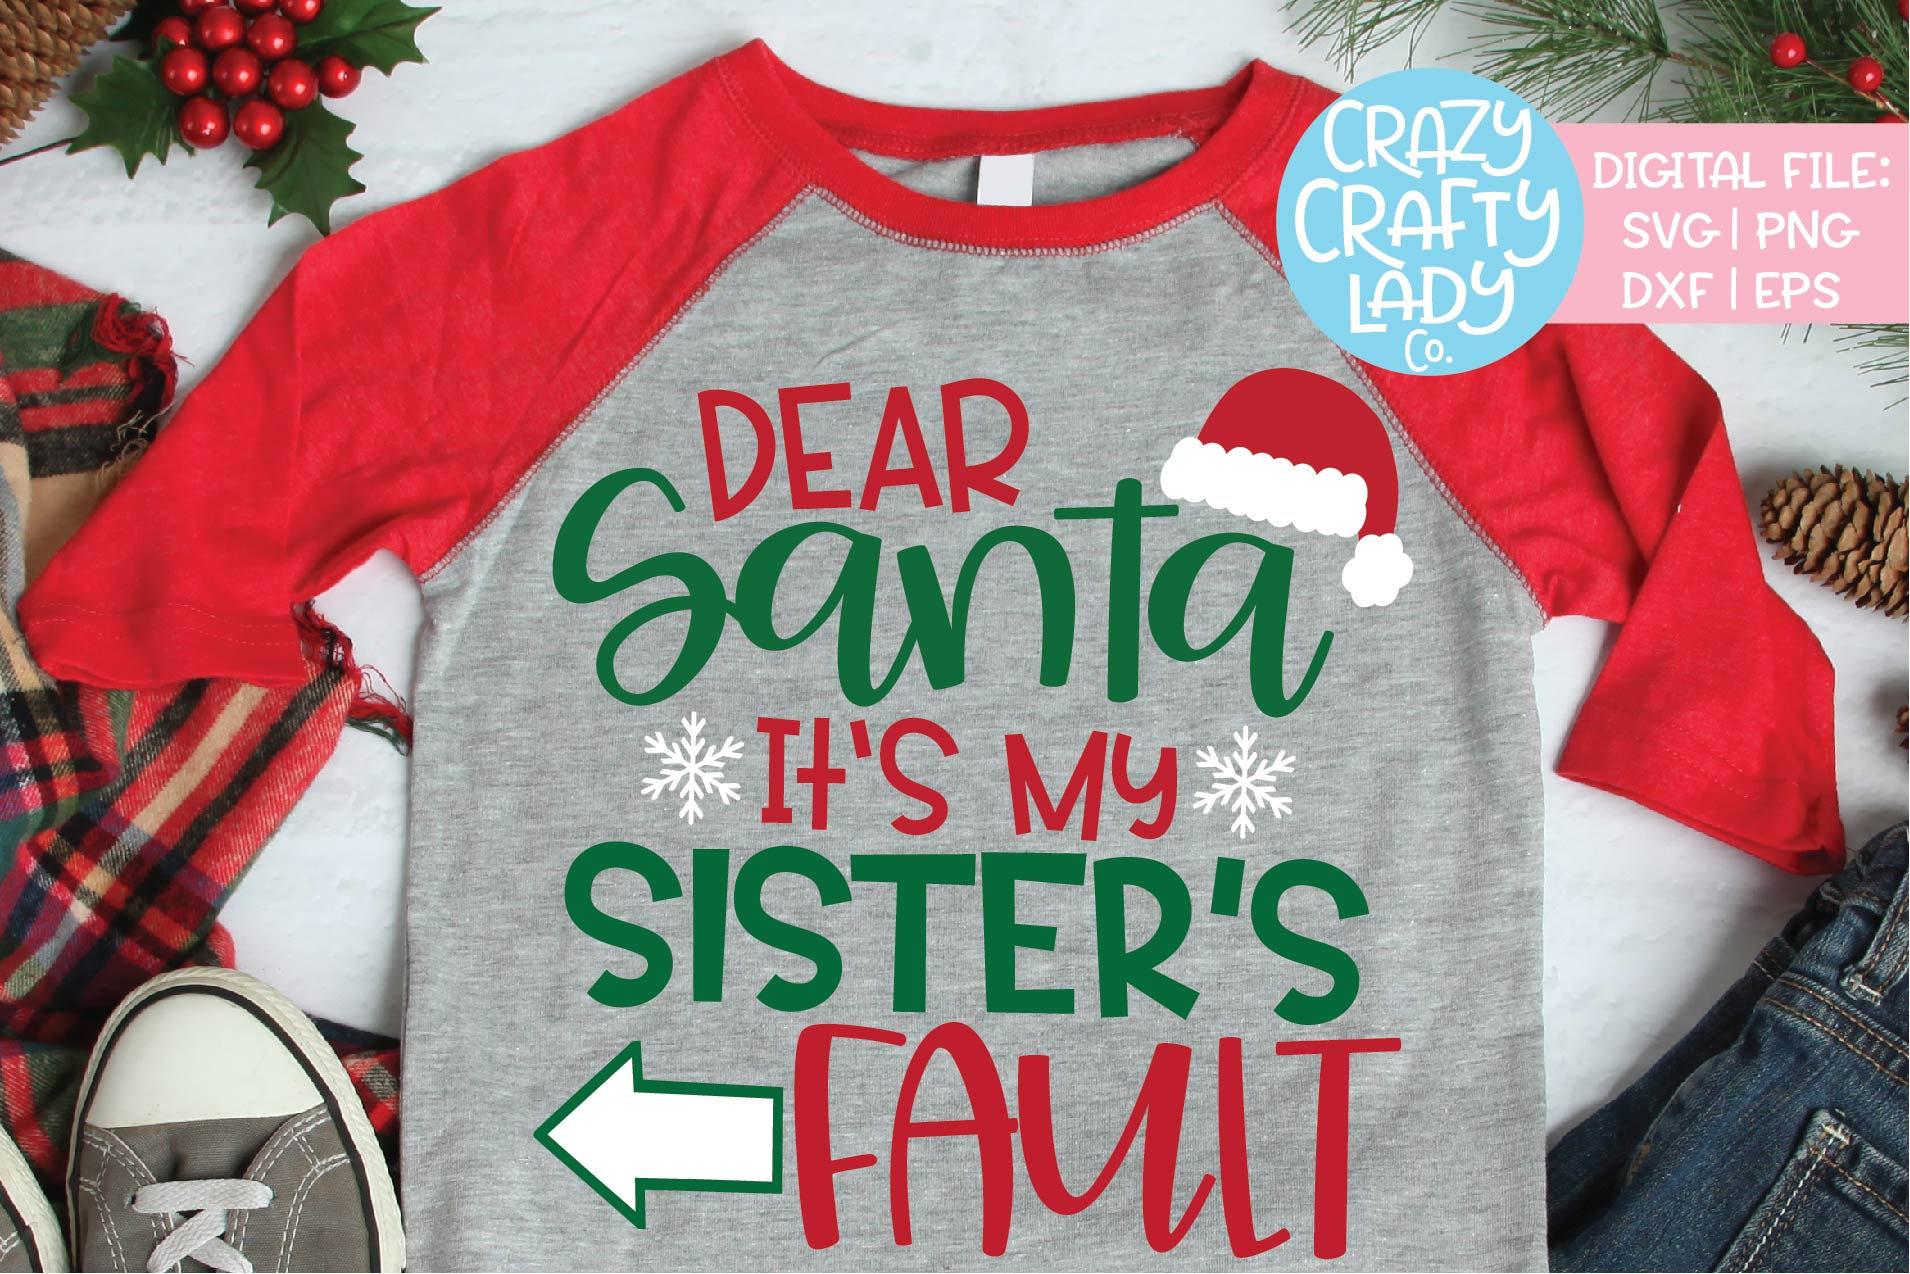 Dear Santa It's My Sister's Fault SVG DXF EPS PNG Cut File example image 1